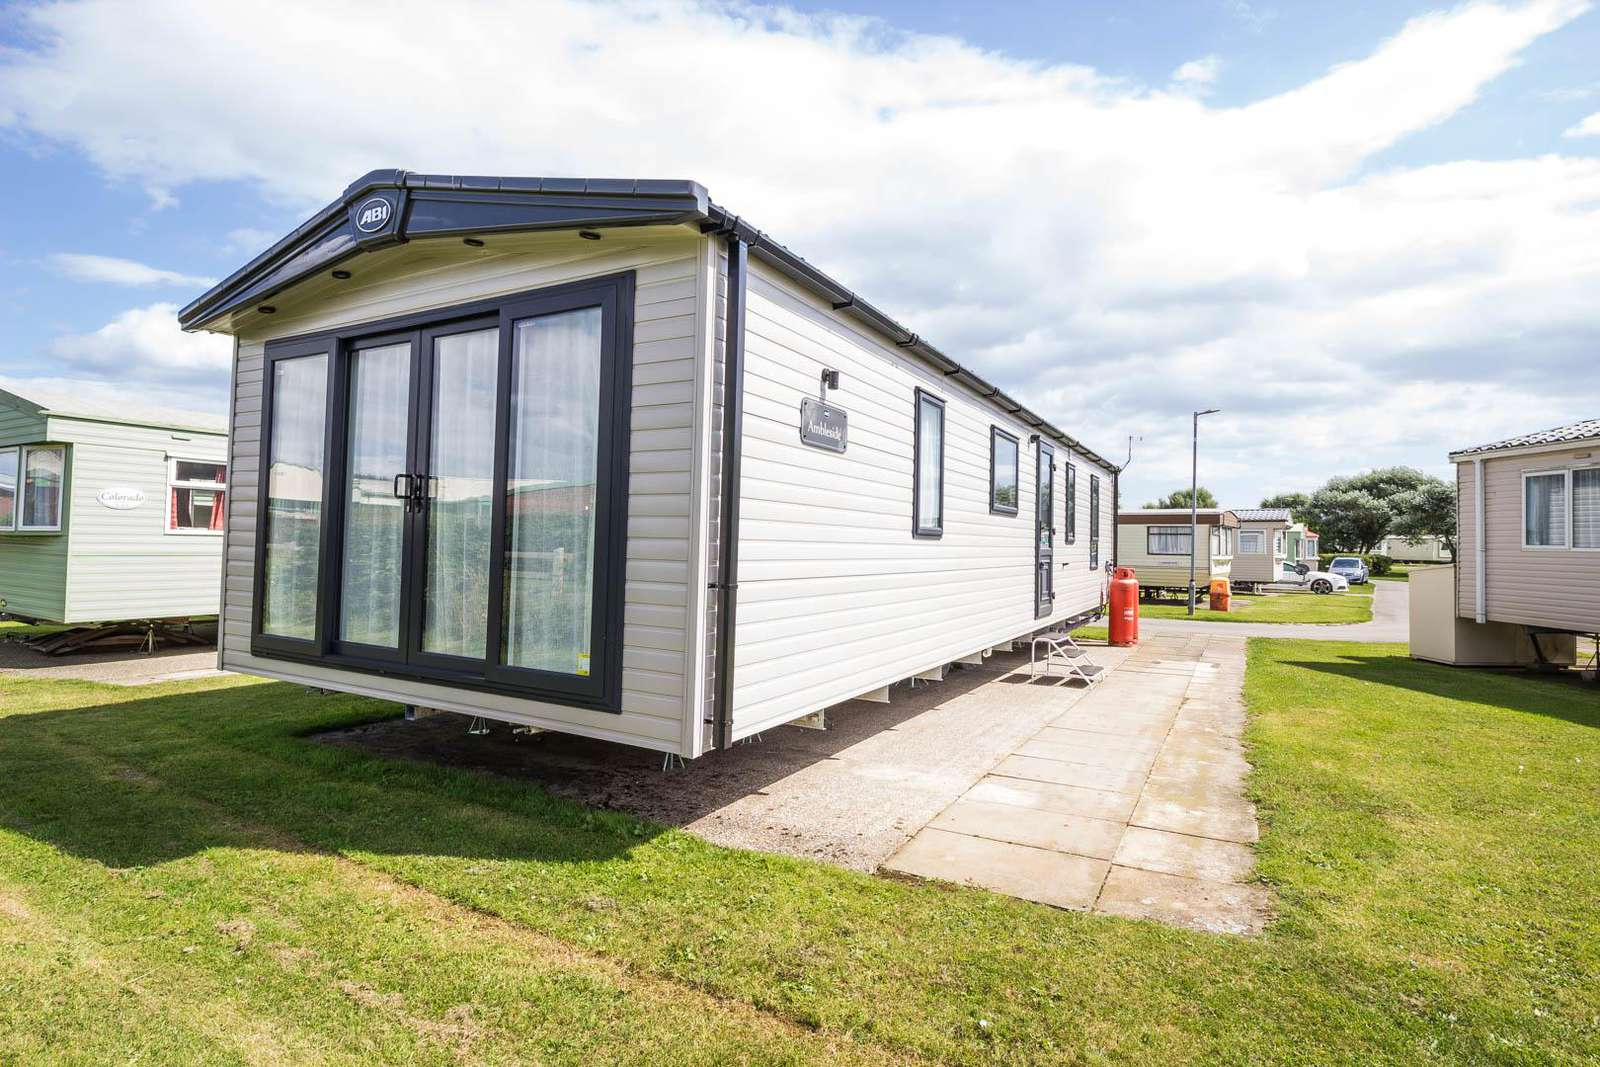 41072SF- South Field are, 3 bed, 8 berth lodge with decking. Platinum rated. - property